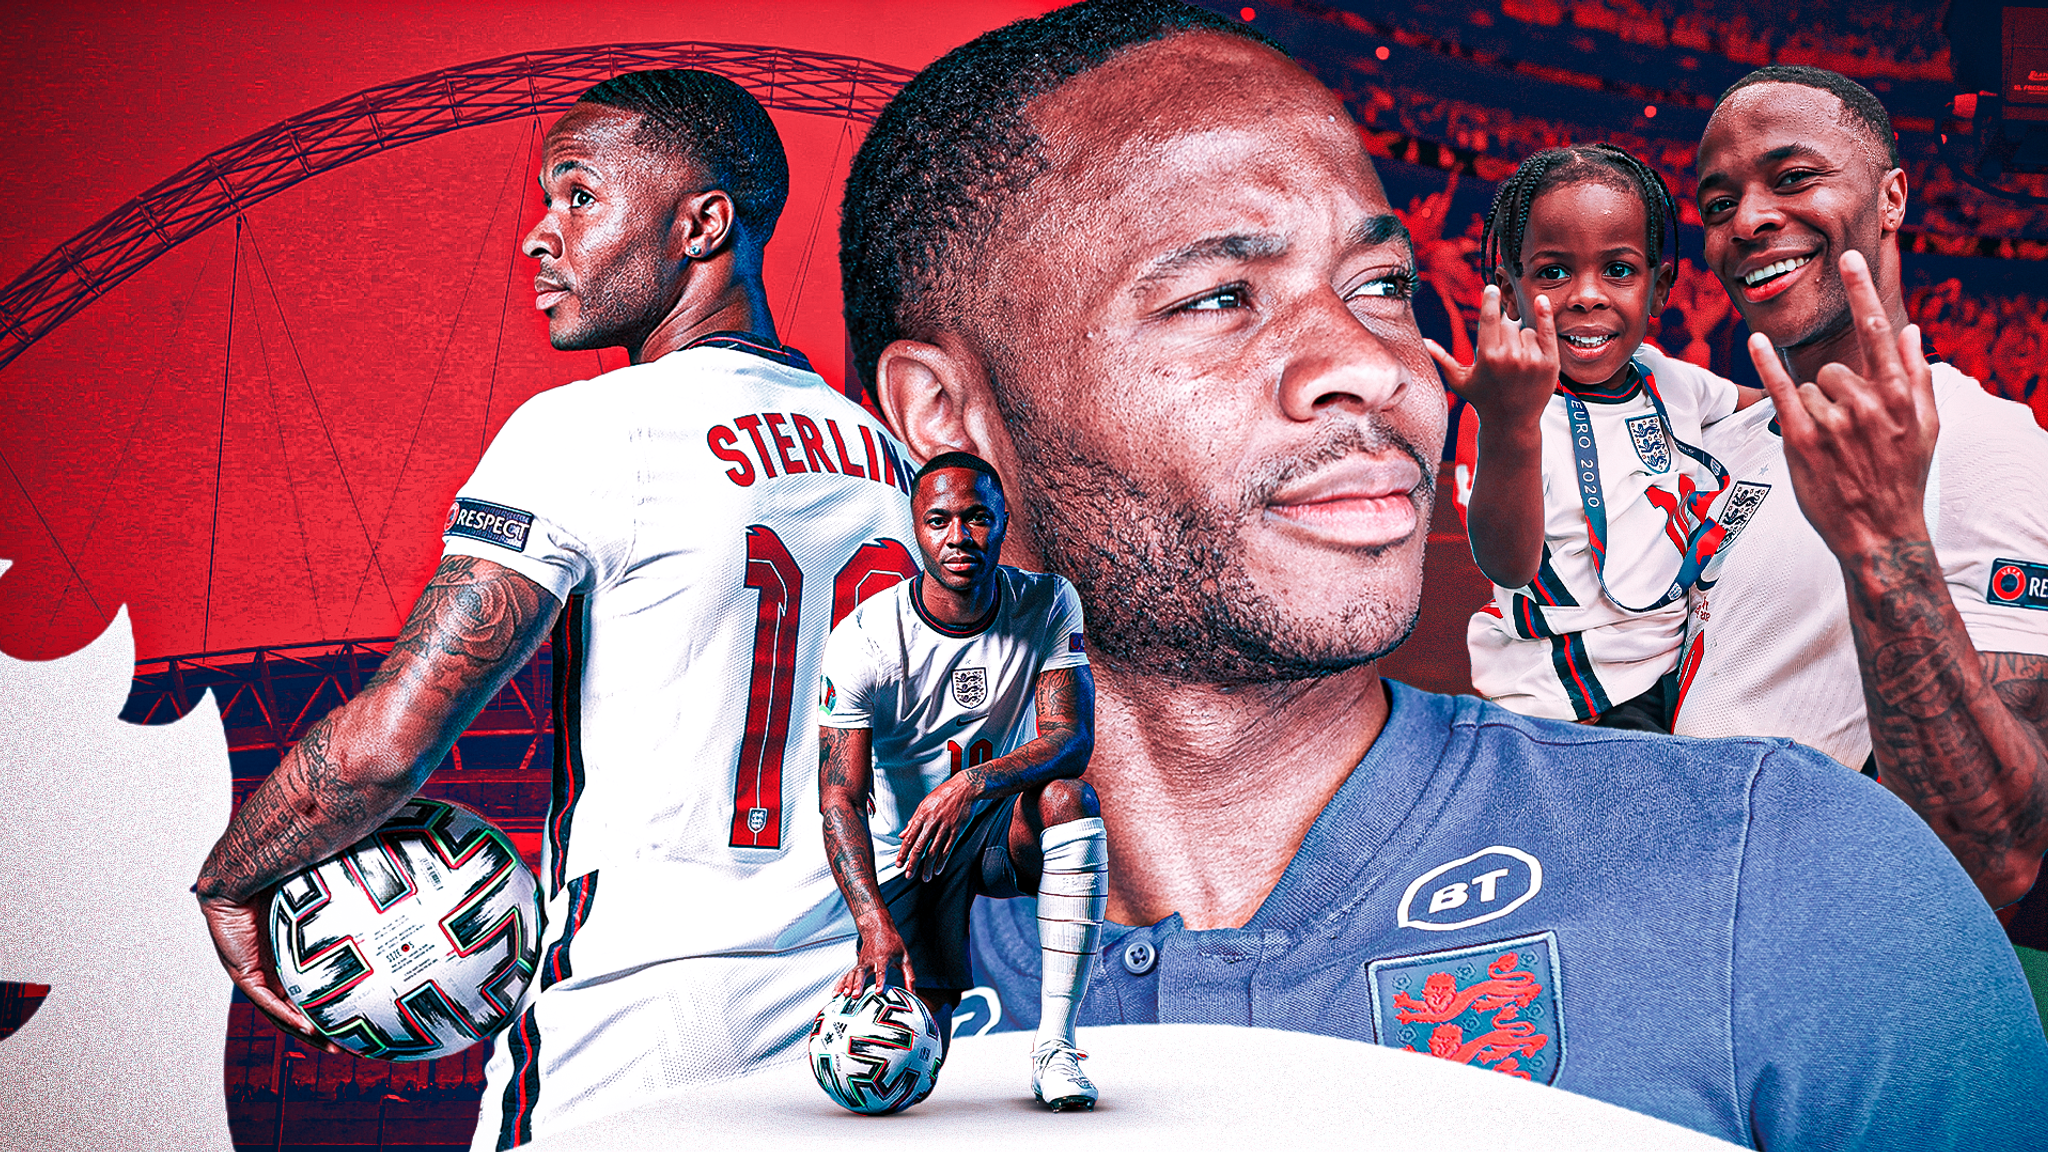 Raheem Sterling has been England's Euro 2020 player of the tournament and  now he can become a national hero | Football News | Sky Sports